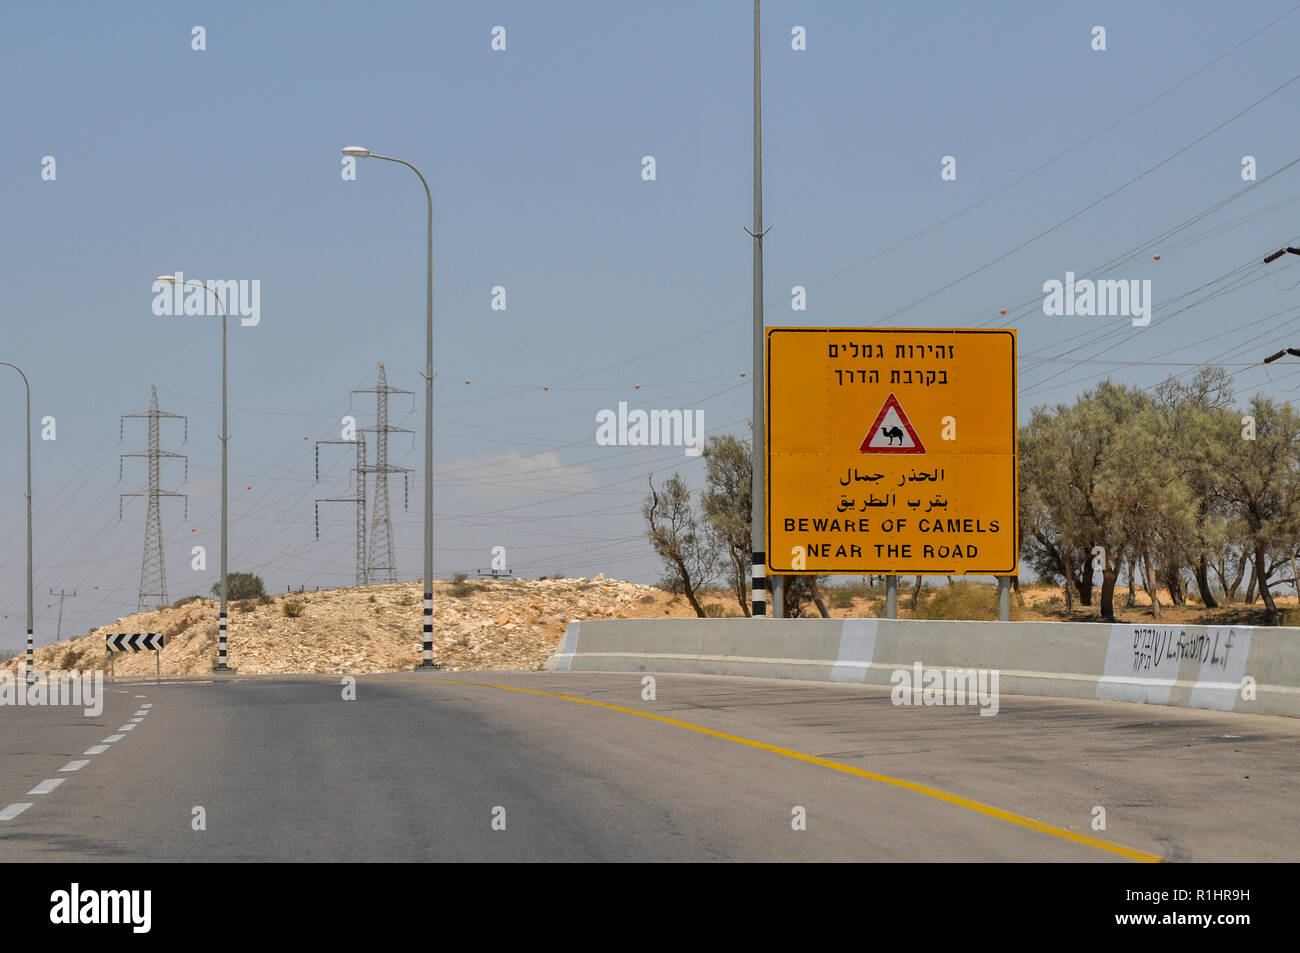 Beware of Camels sign. Photographed in the Negev Desert, Israel Stock Photo